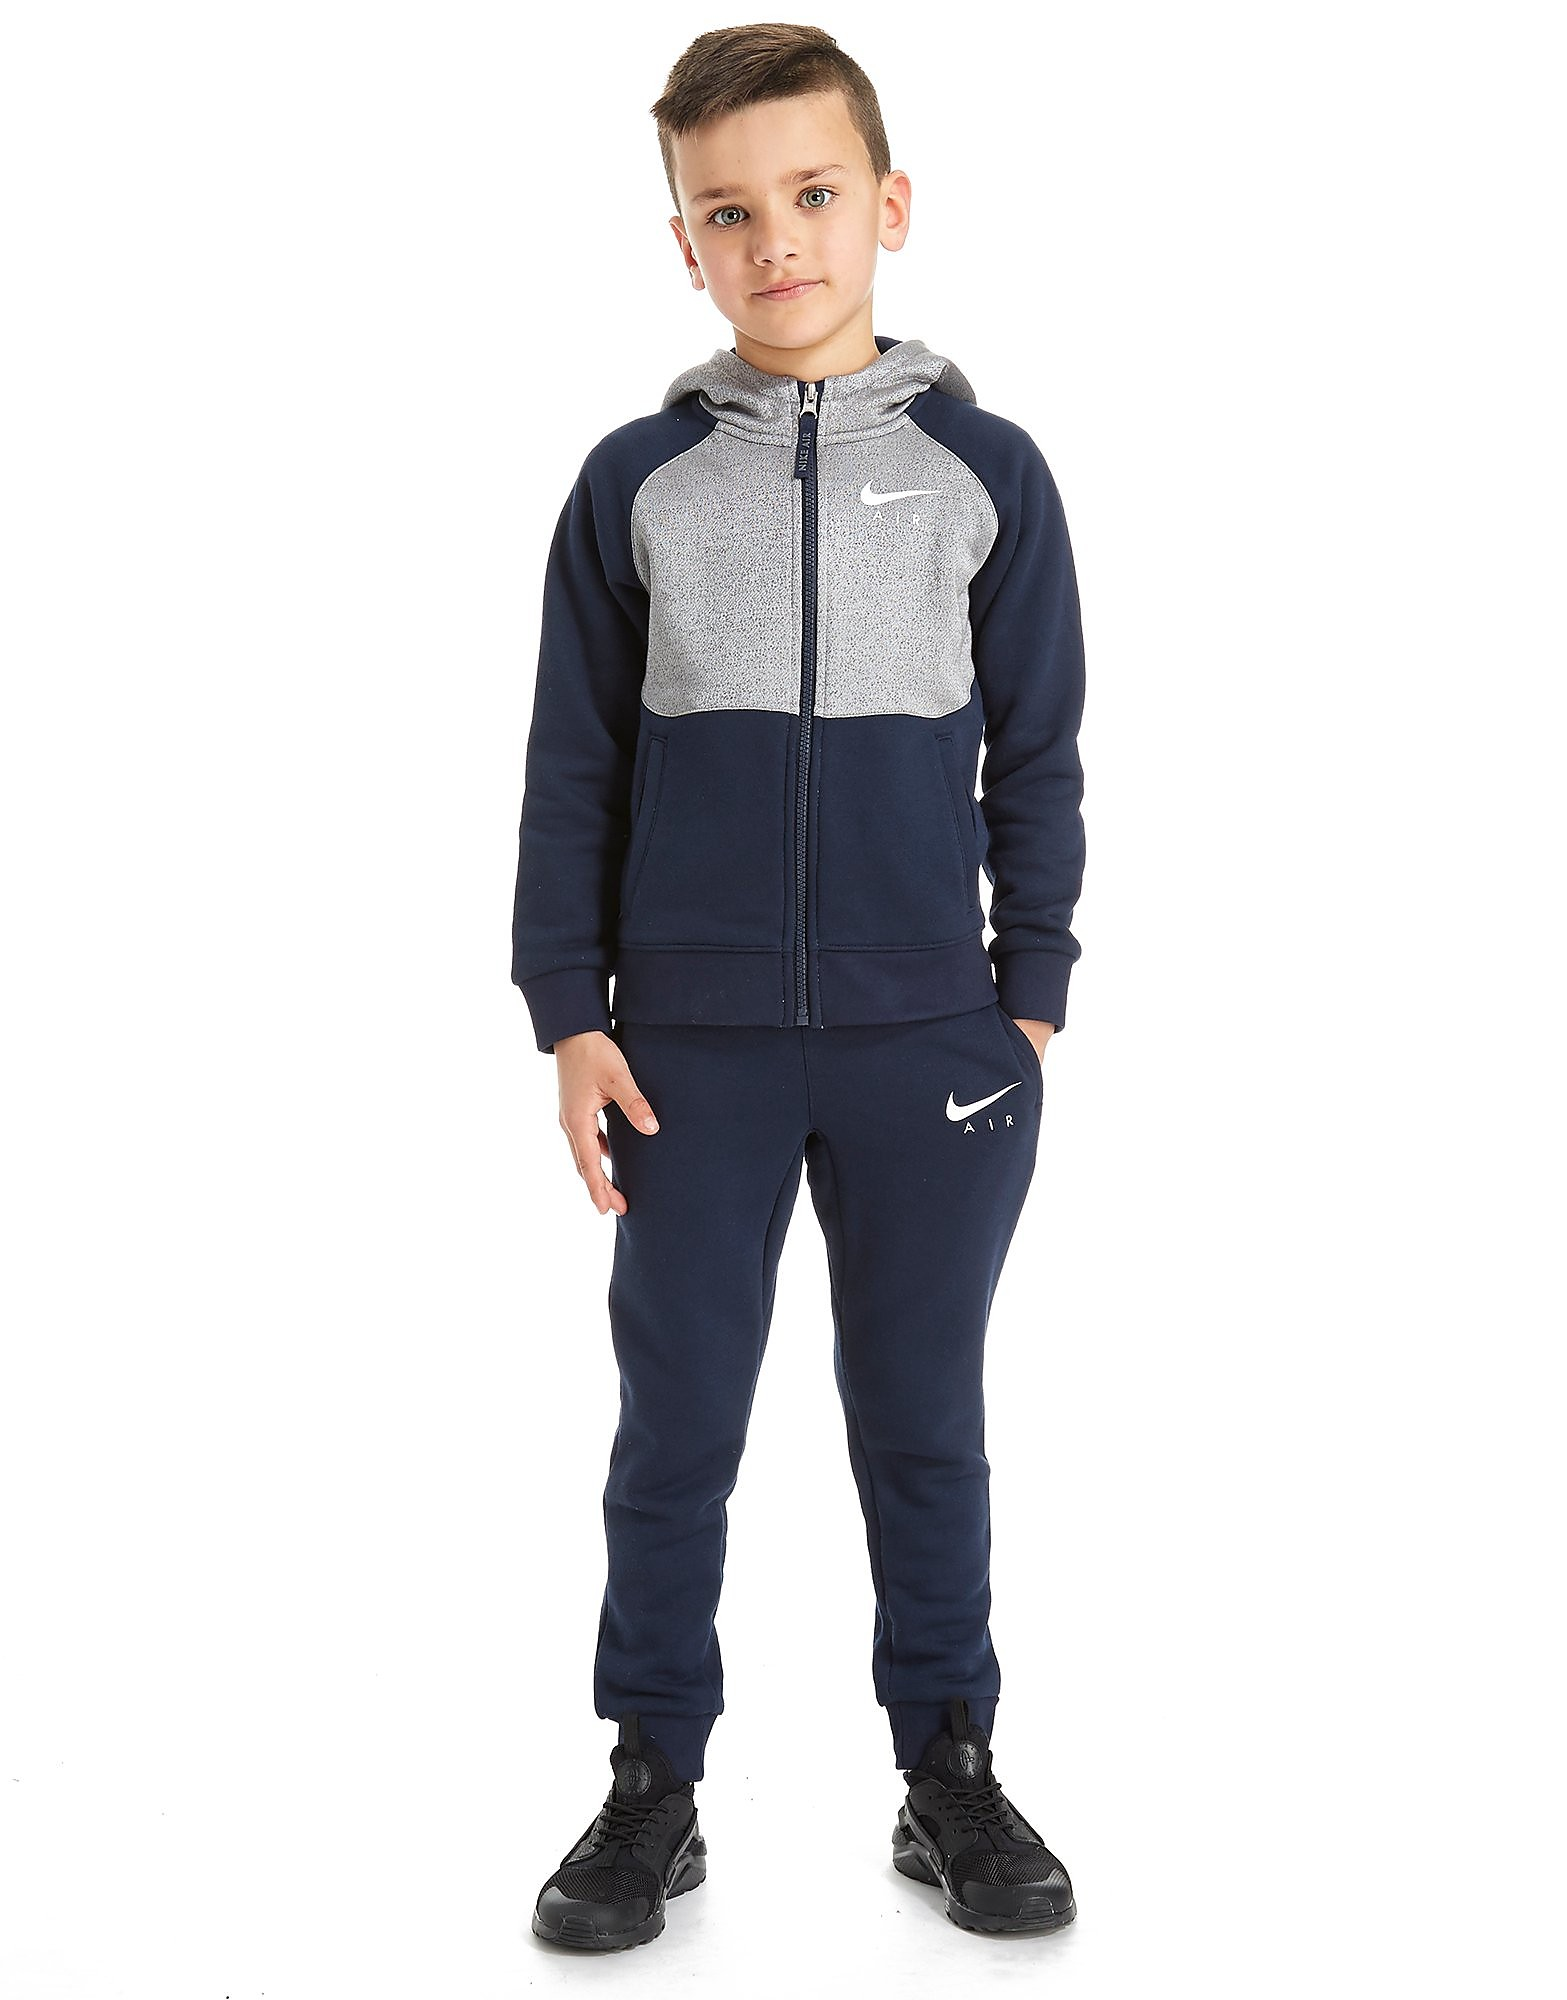 Nike Tuta Air con zip integrale Bambino